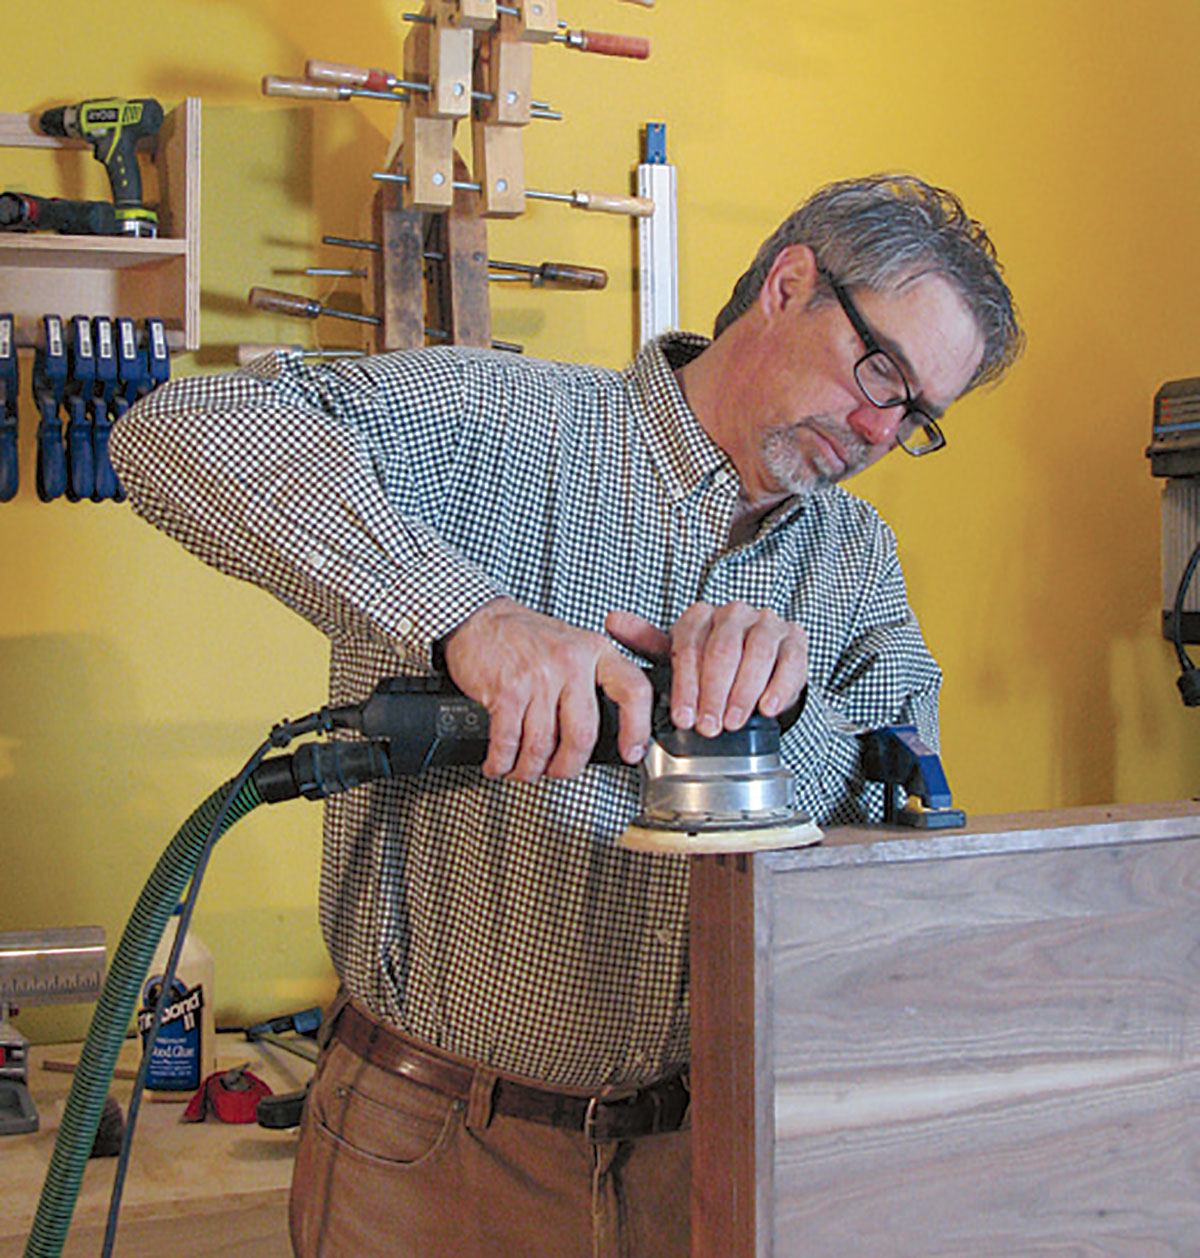 Rob Johnstone, Publisher of Woodworker's Journal and Director of Content Marketing at Rockler Press